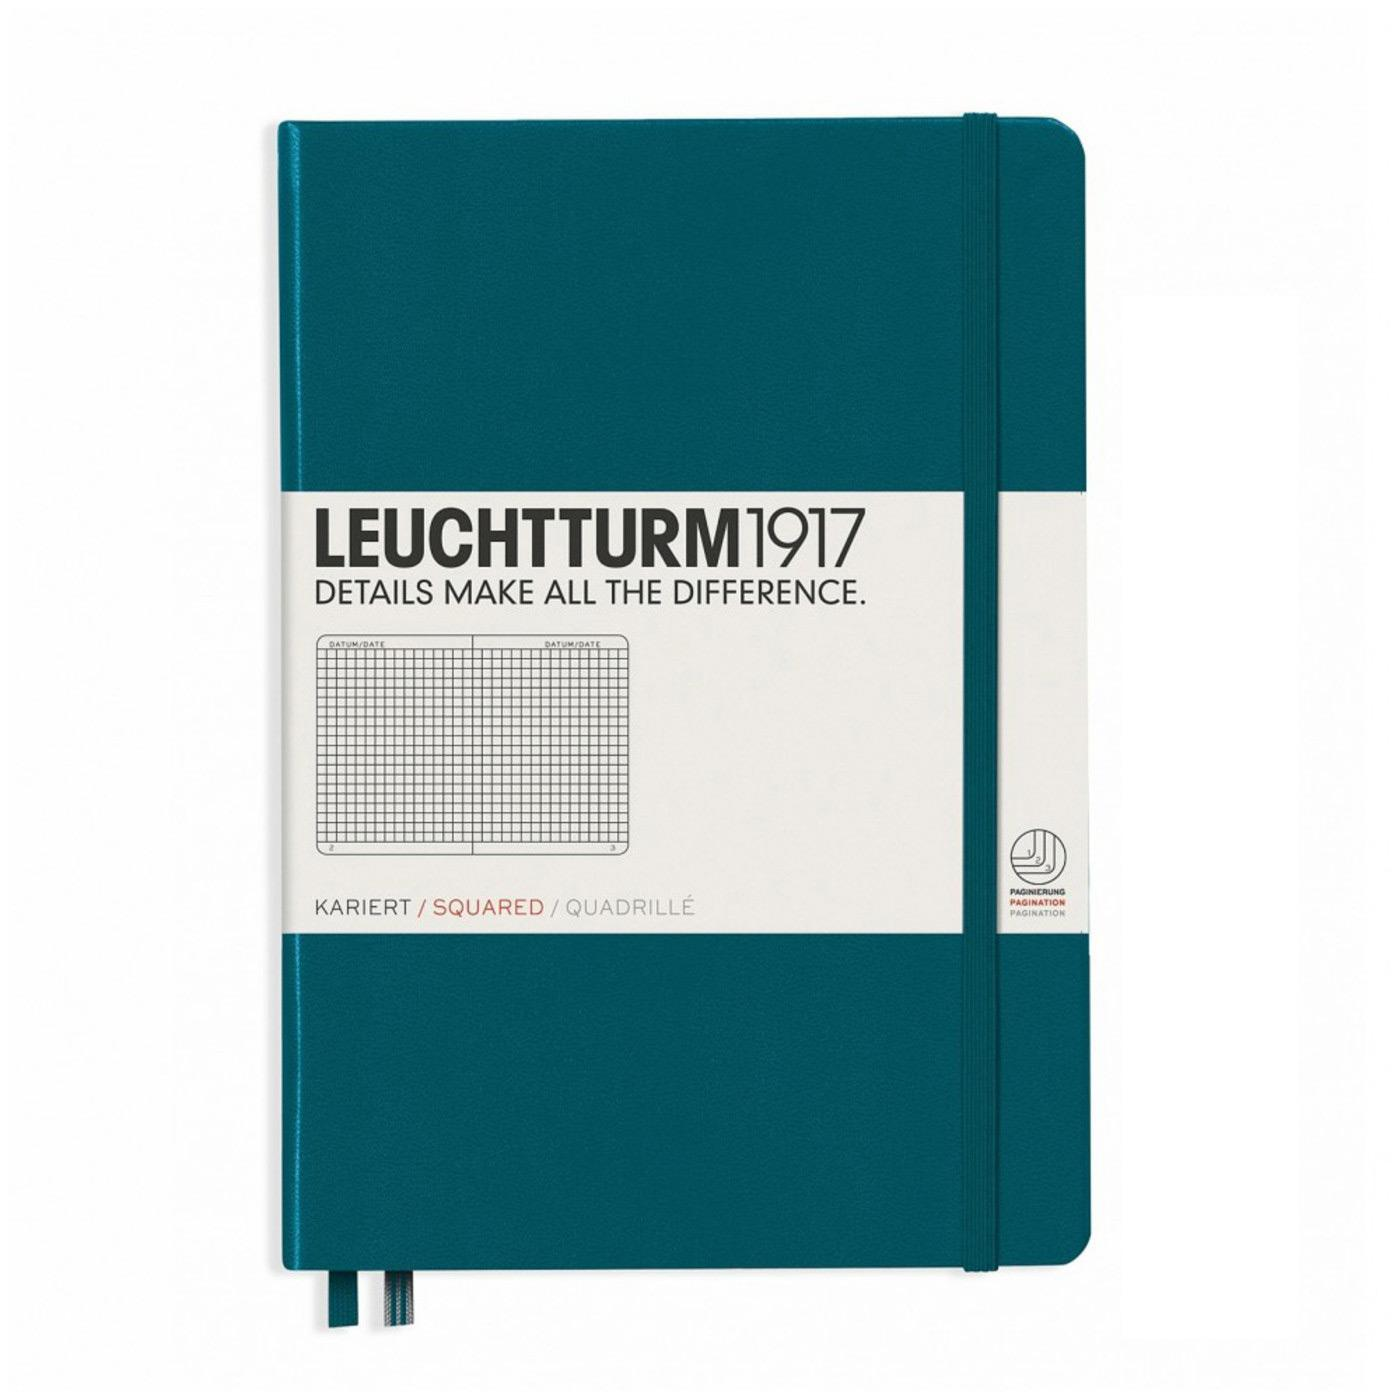 Leuchtturm 1917 A5 Medium Hardcover Notebook – Pacific Green – Grid